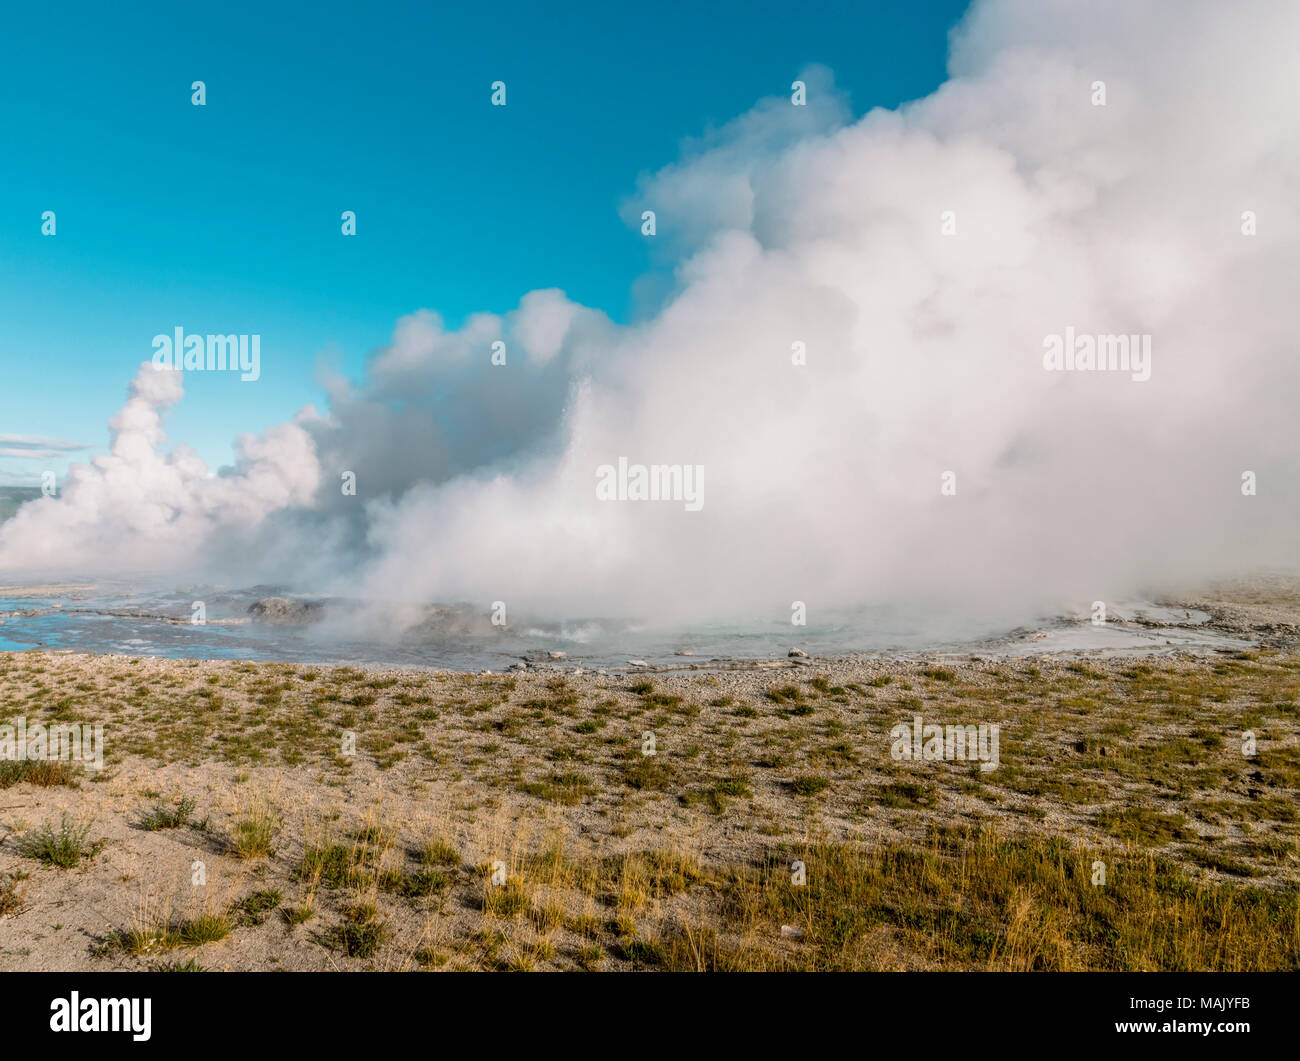 Geysers erupting in a lake of water with a field in the foreground and huge steam plumes against a blue sky. - Stock Image